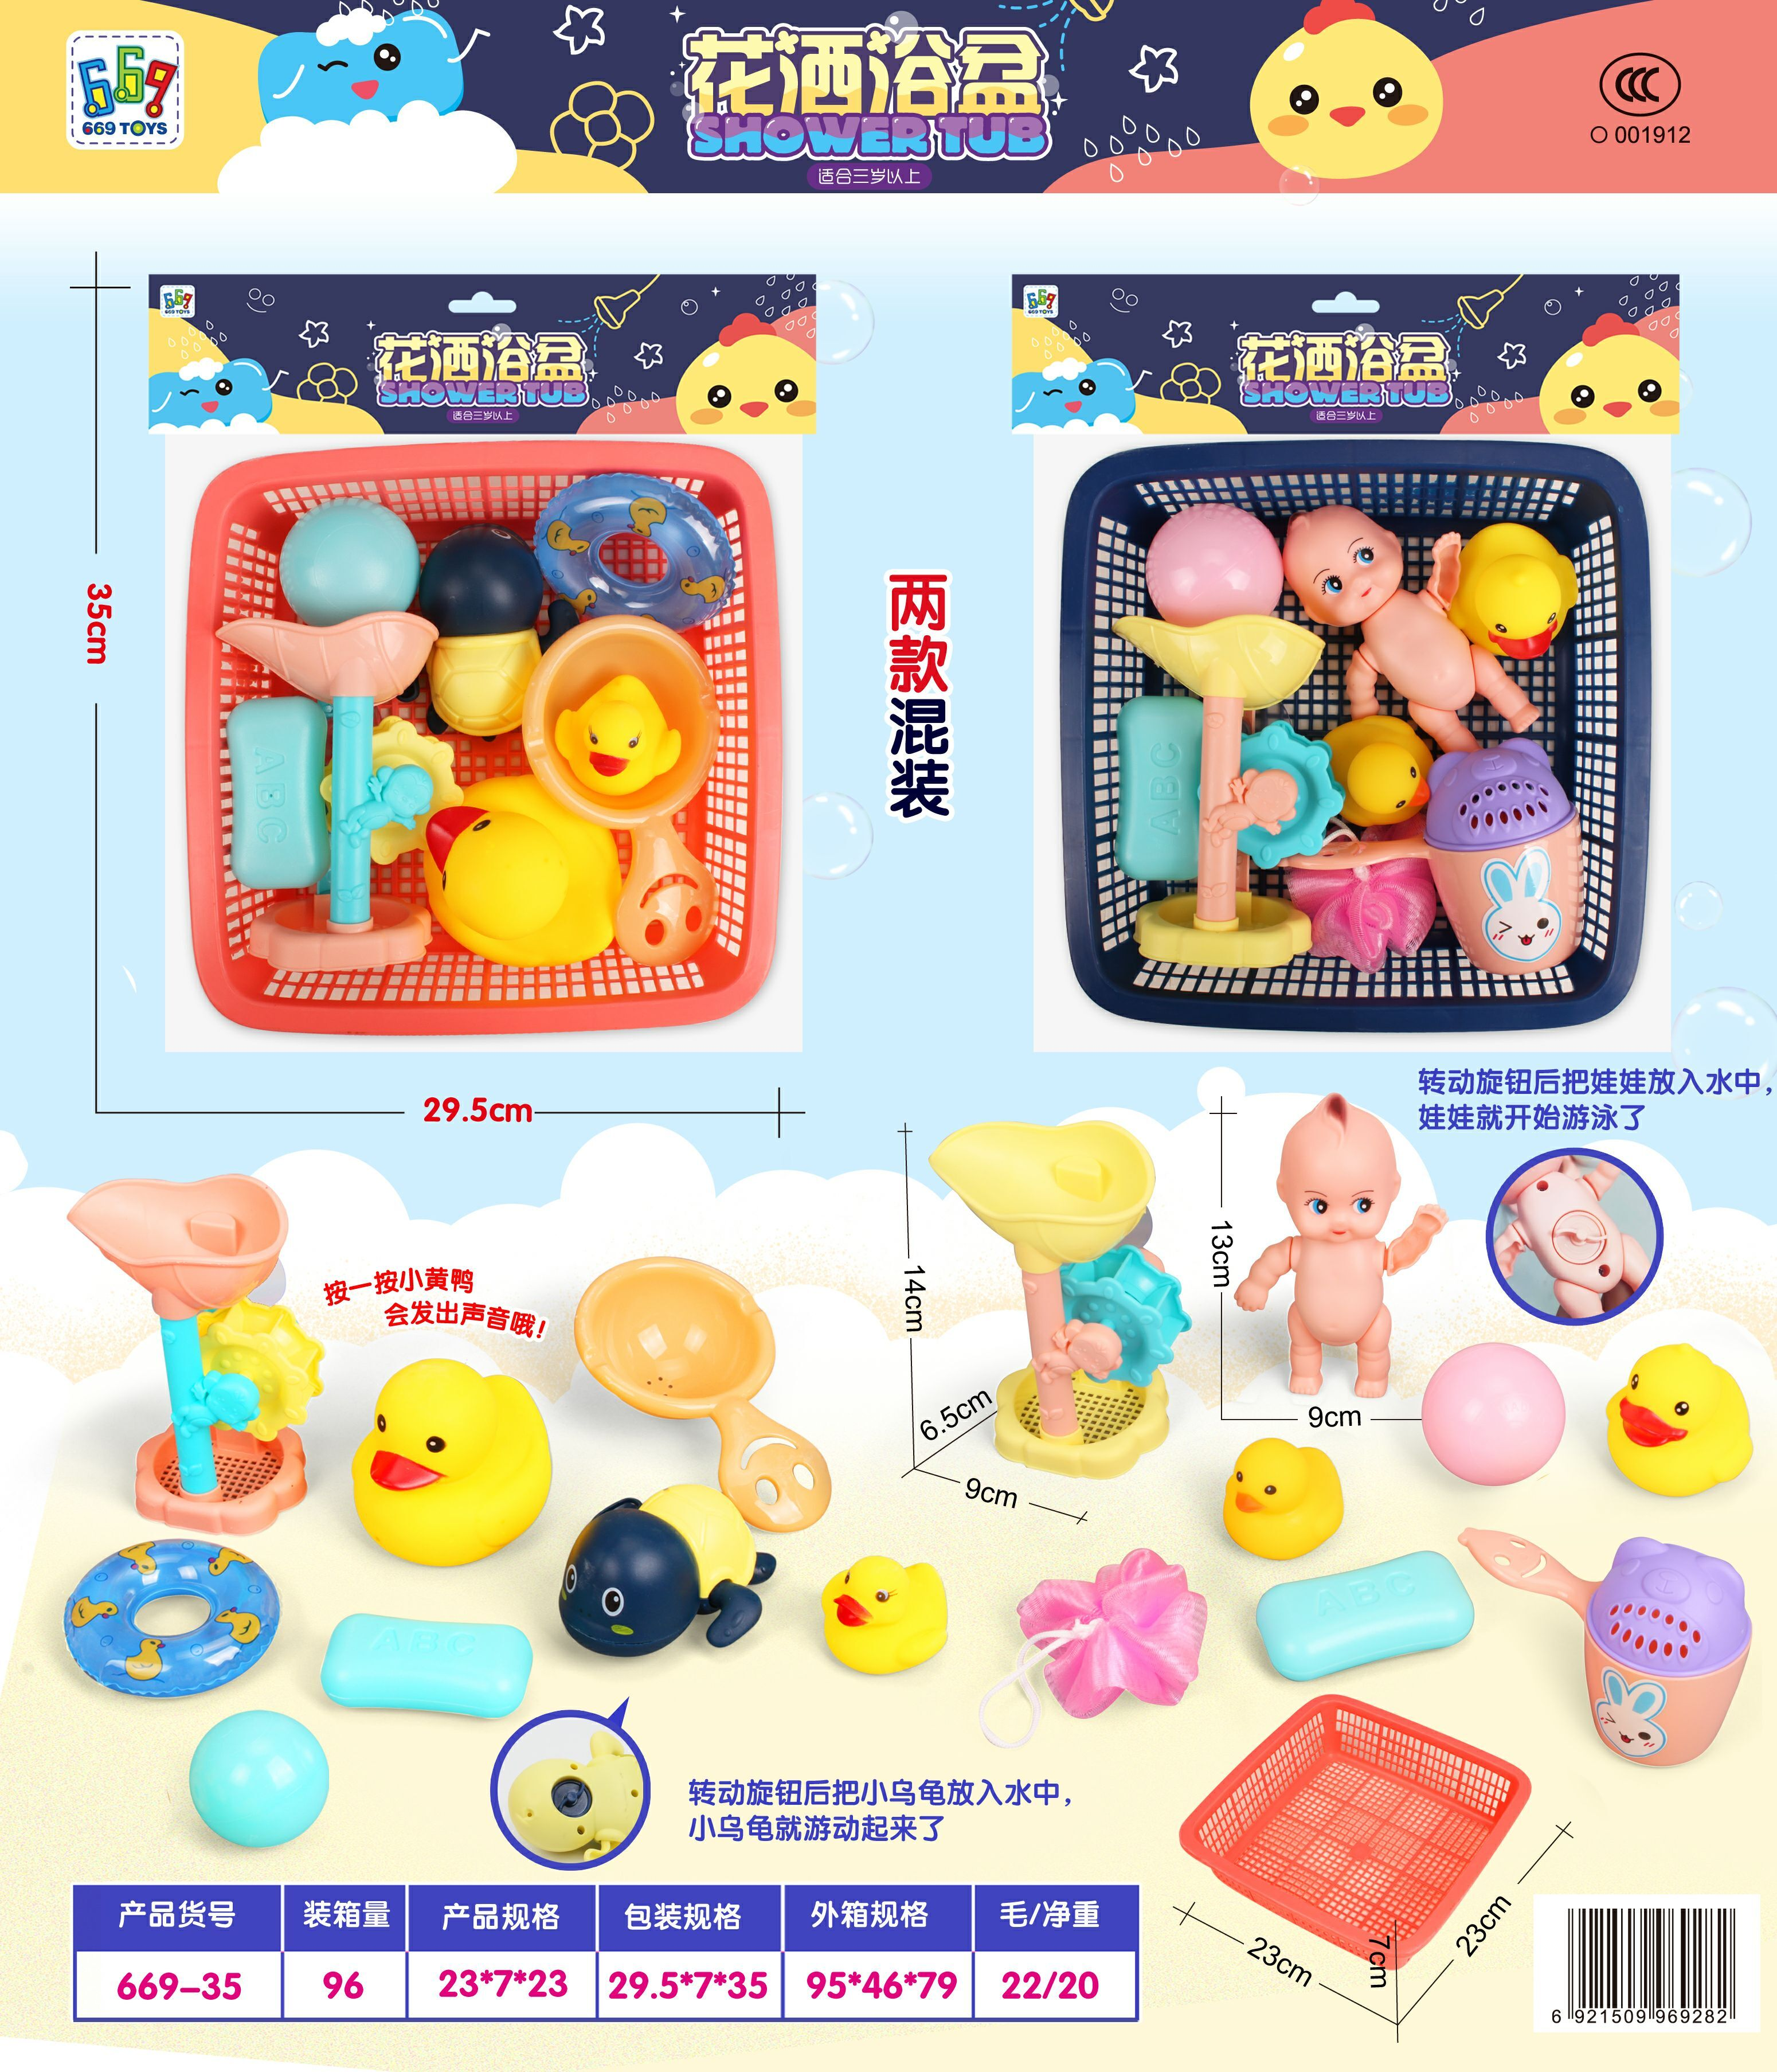 Collection basket + swimming + swimming suit